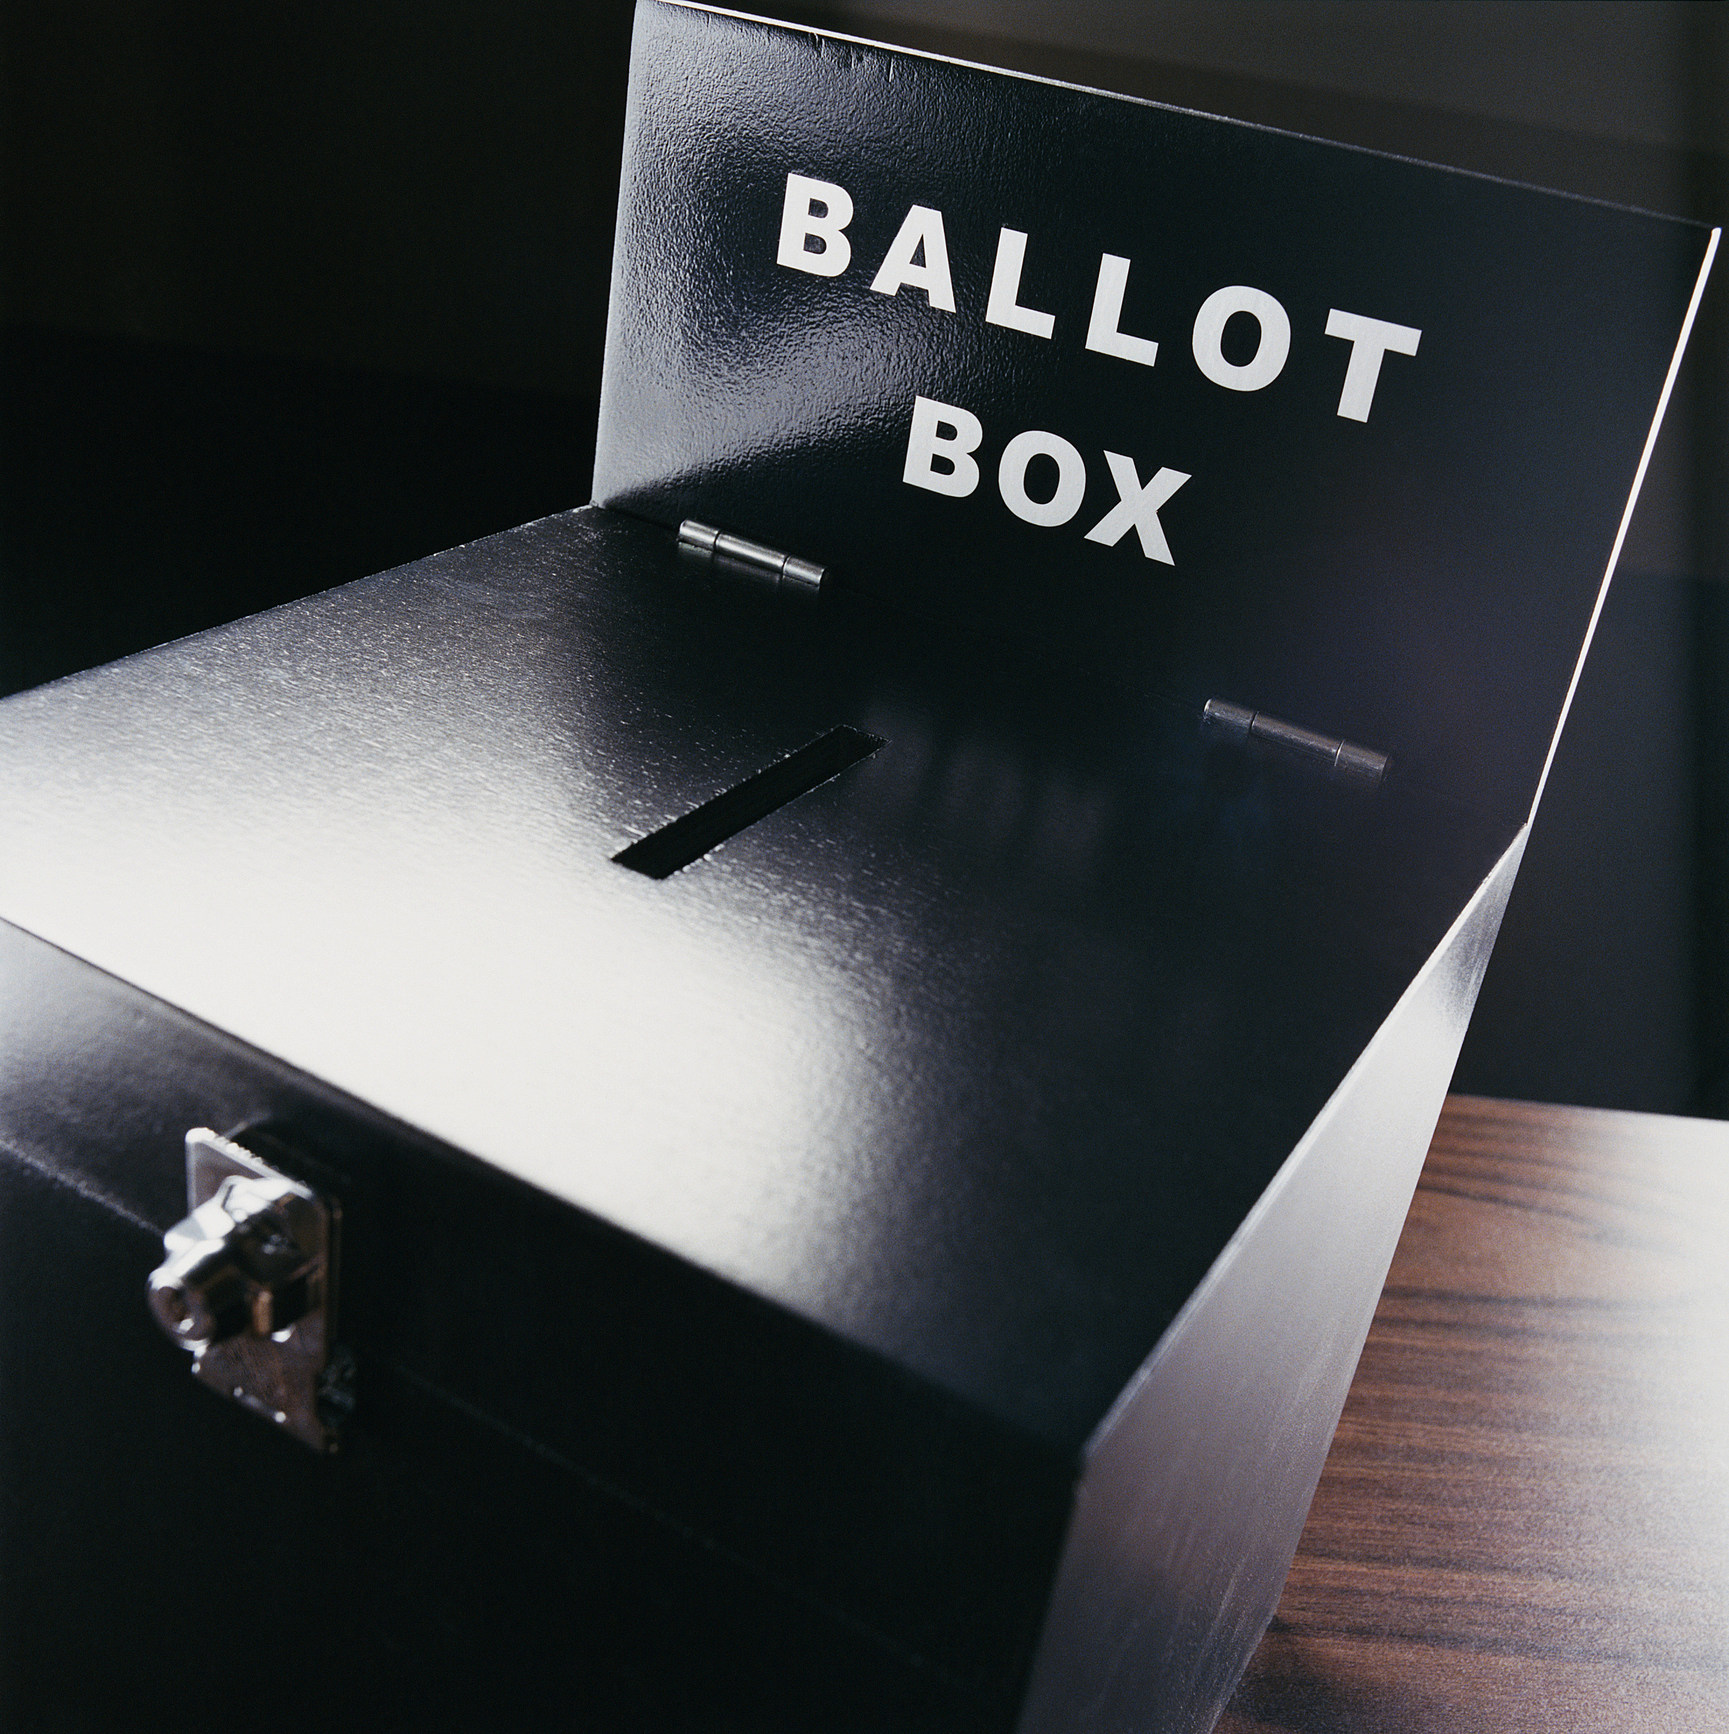 Studio Shot of a Ballot Box